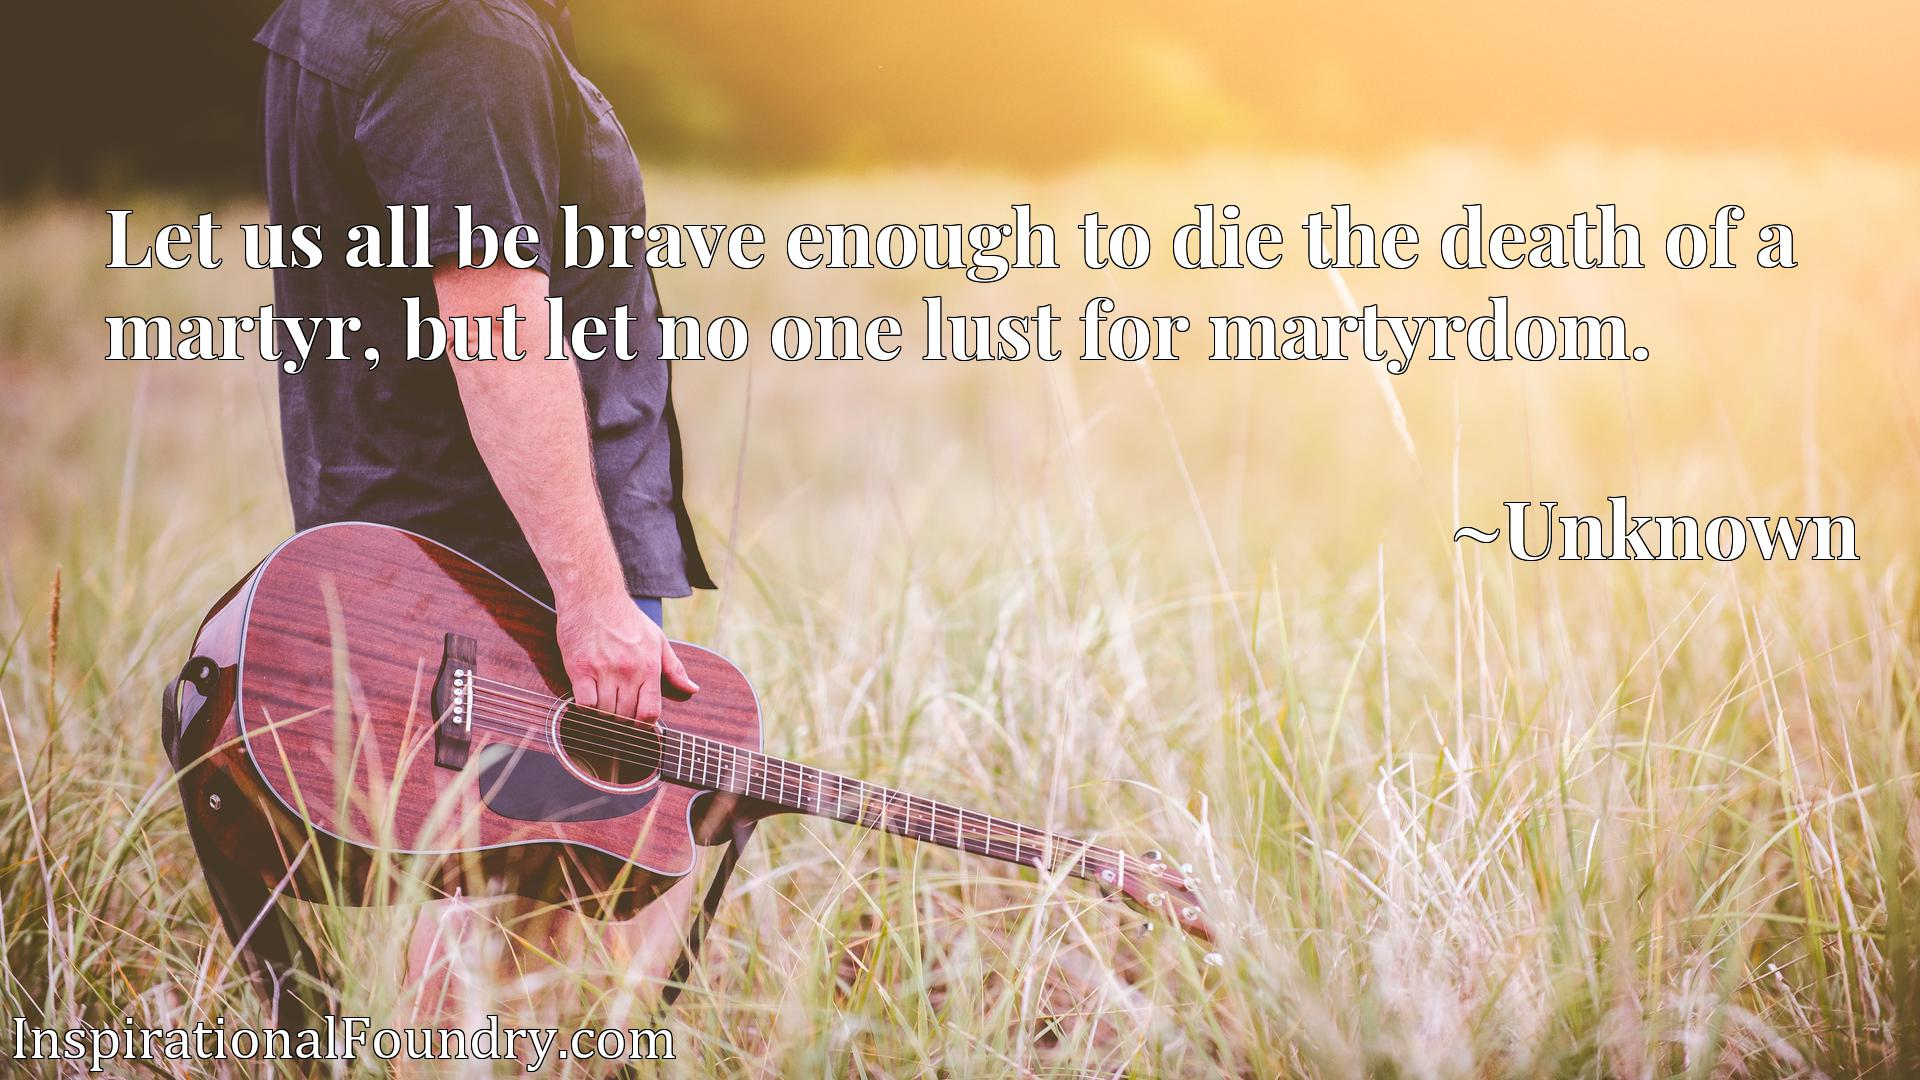 Quote Picture :Let us all be brave enough to die the death of a martyr, but let no one lust for martyrdom.